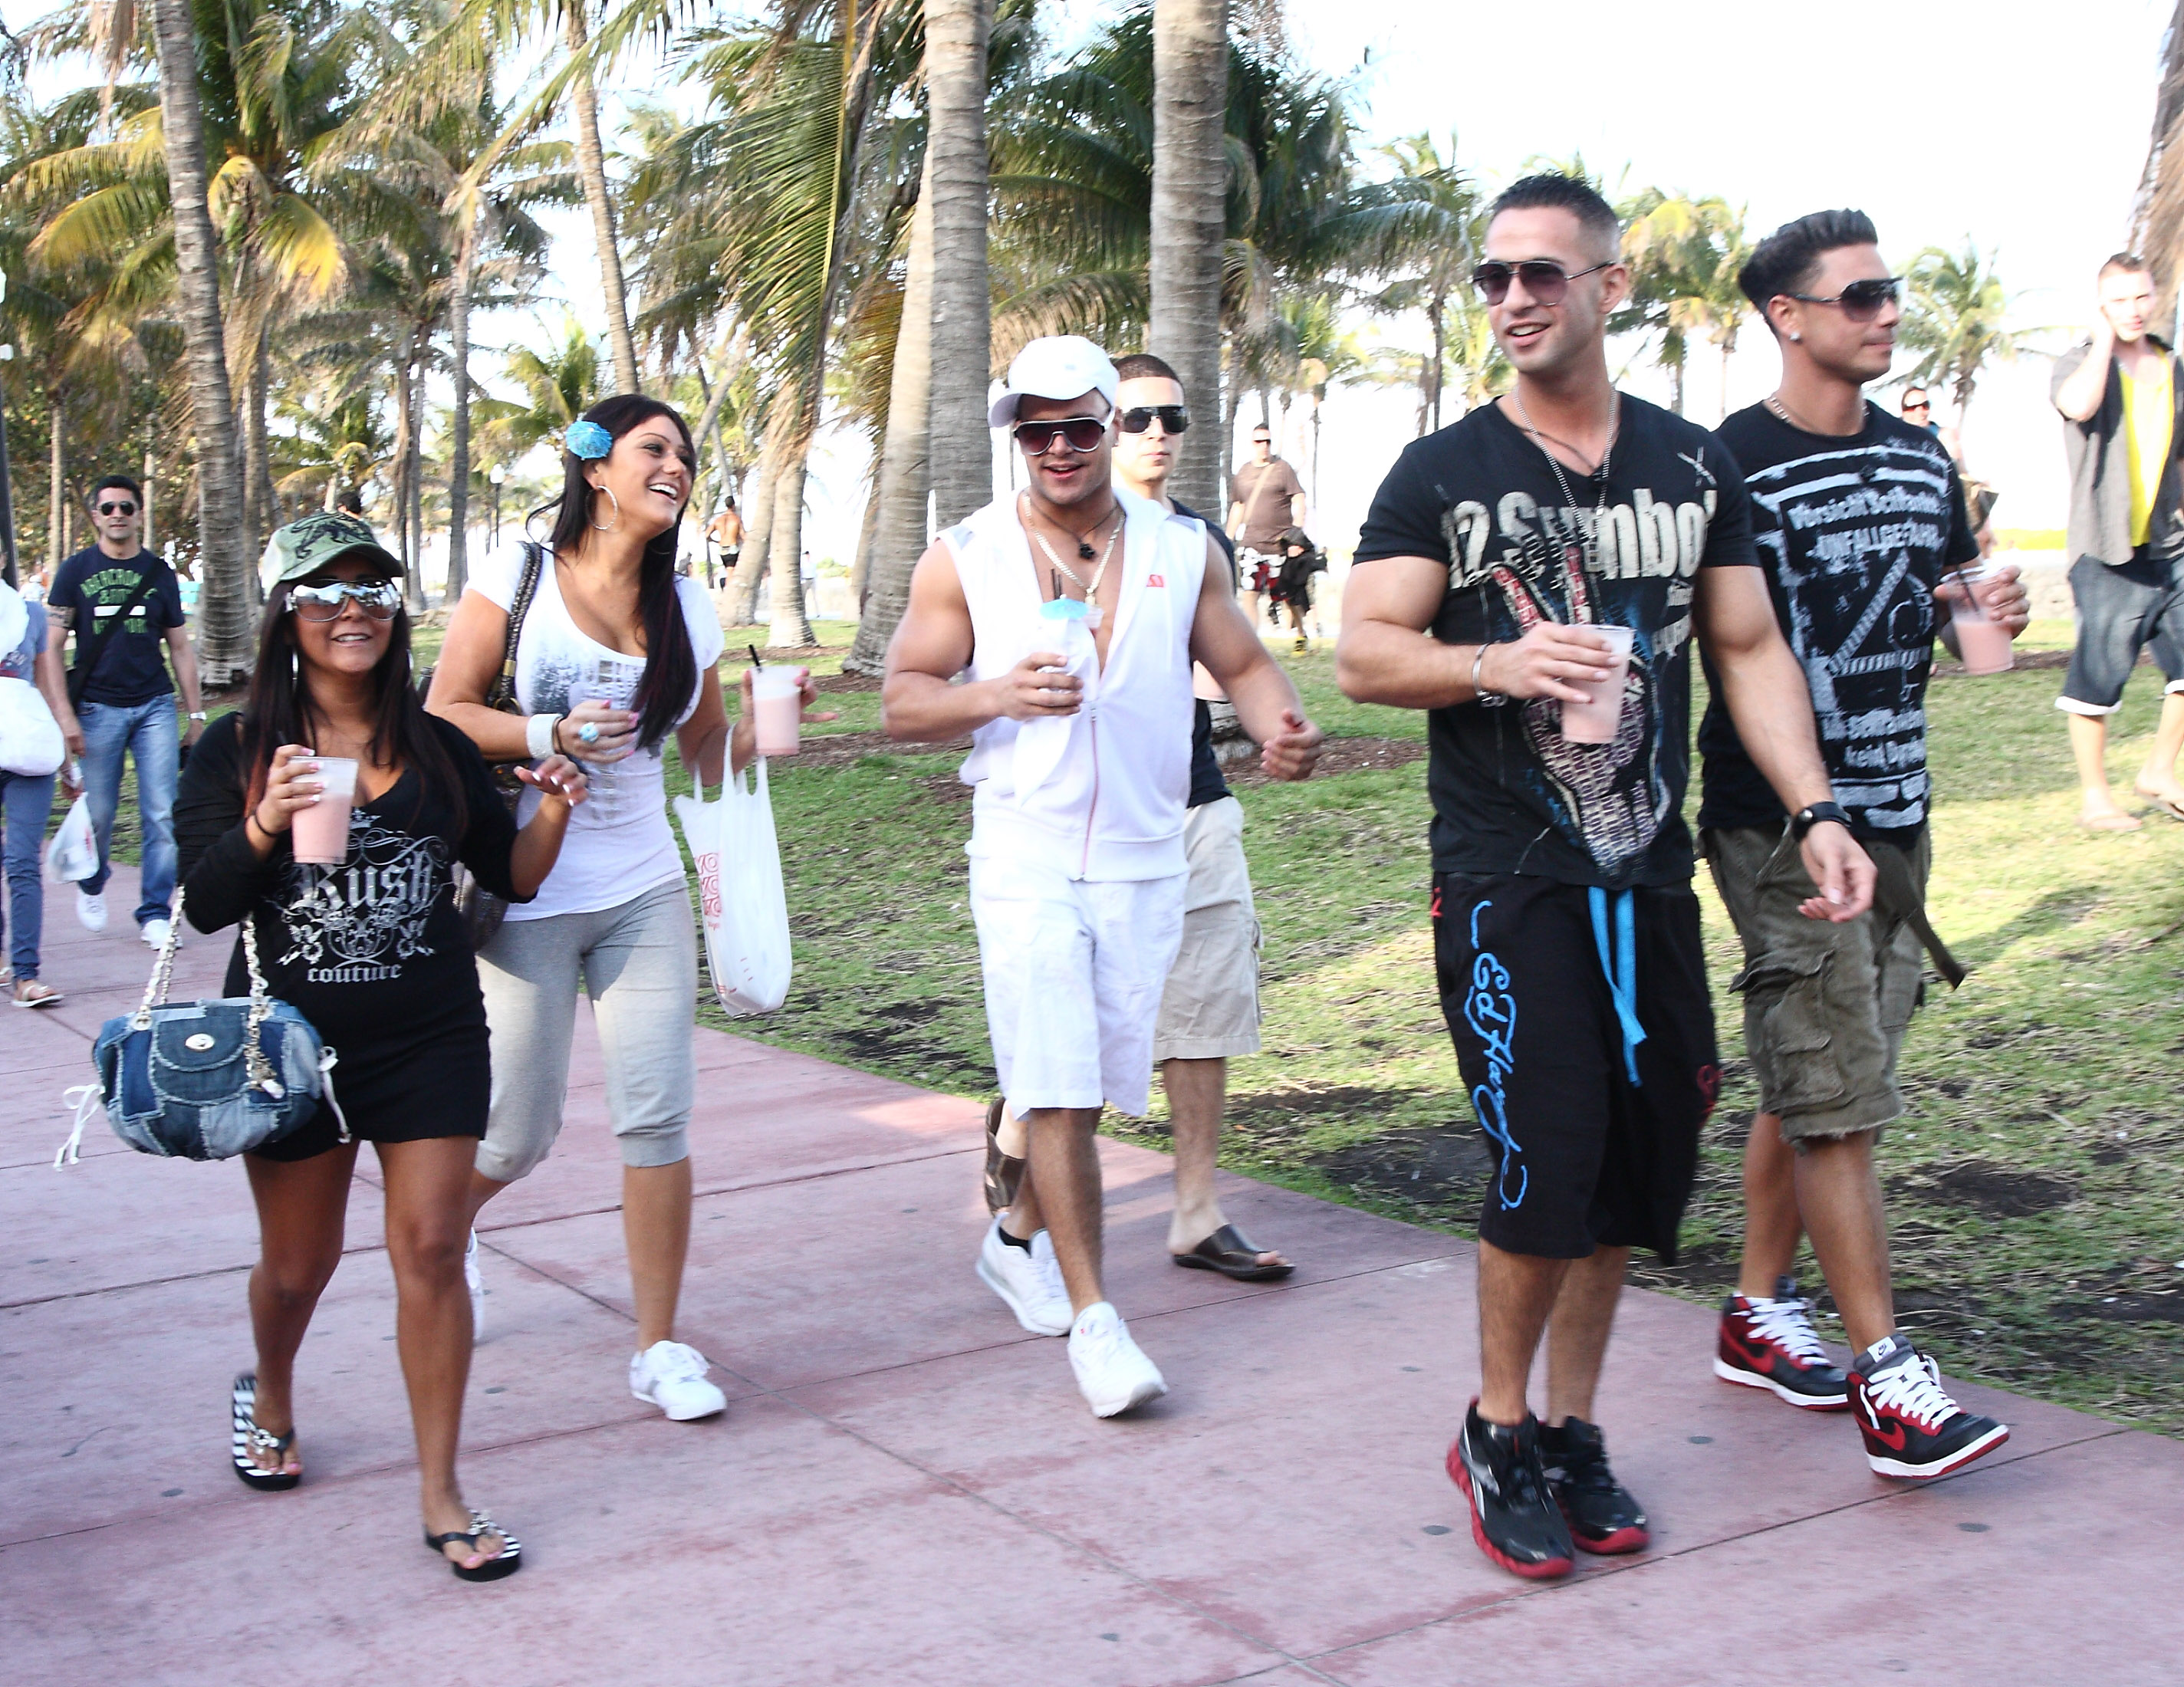 Cast of The Jersey Shore walking outside.